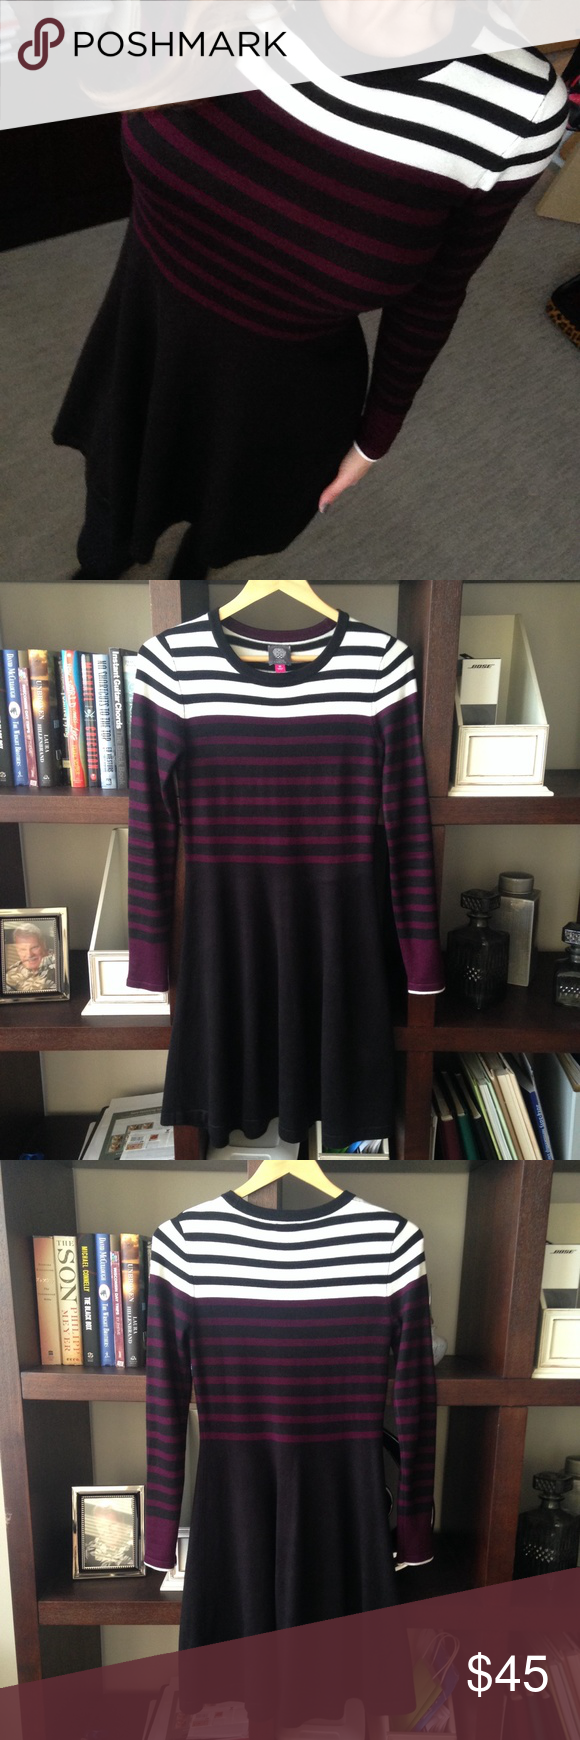 8c6eff86221 NWT Vince Camuto Sweater Dress Size XS So chic! Vince Camuto Dresses Long  Sleeve